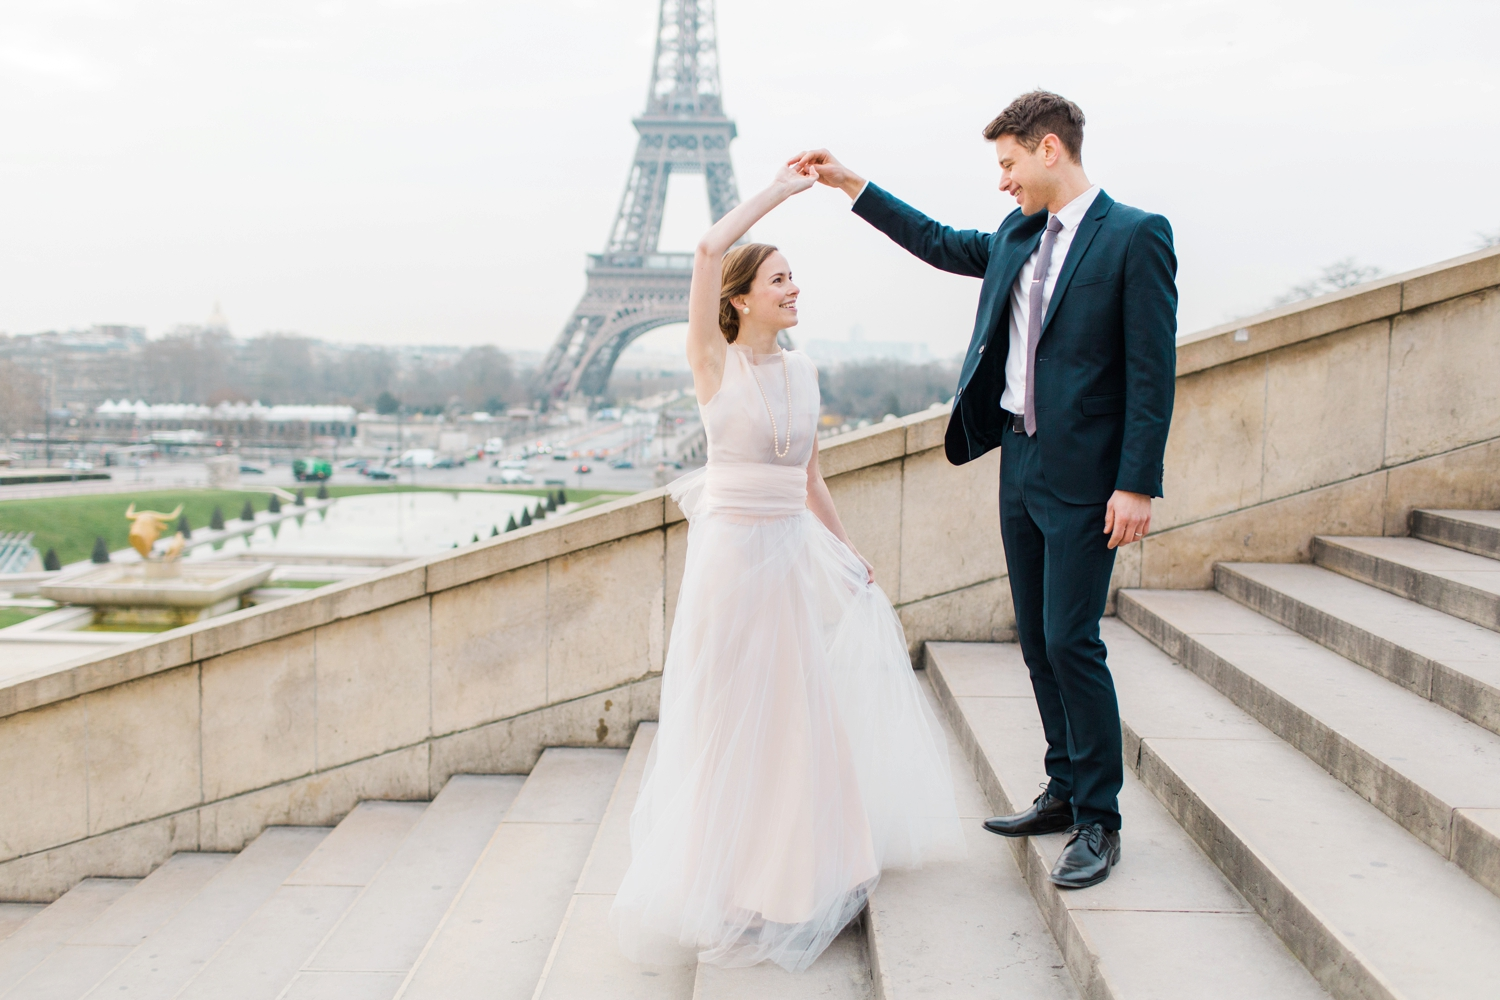 Paris-France-Wedding-Photography-Chloe-Luka-Photography_7662.jpg